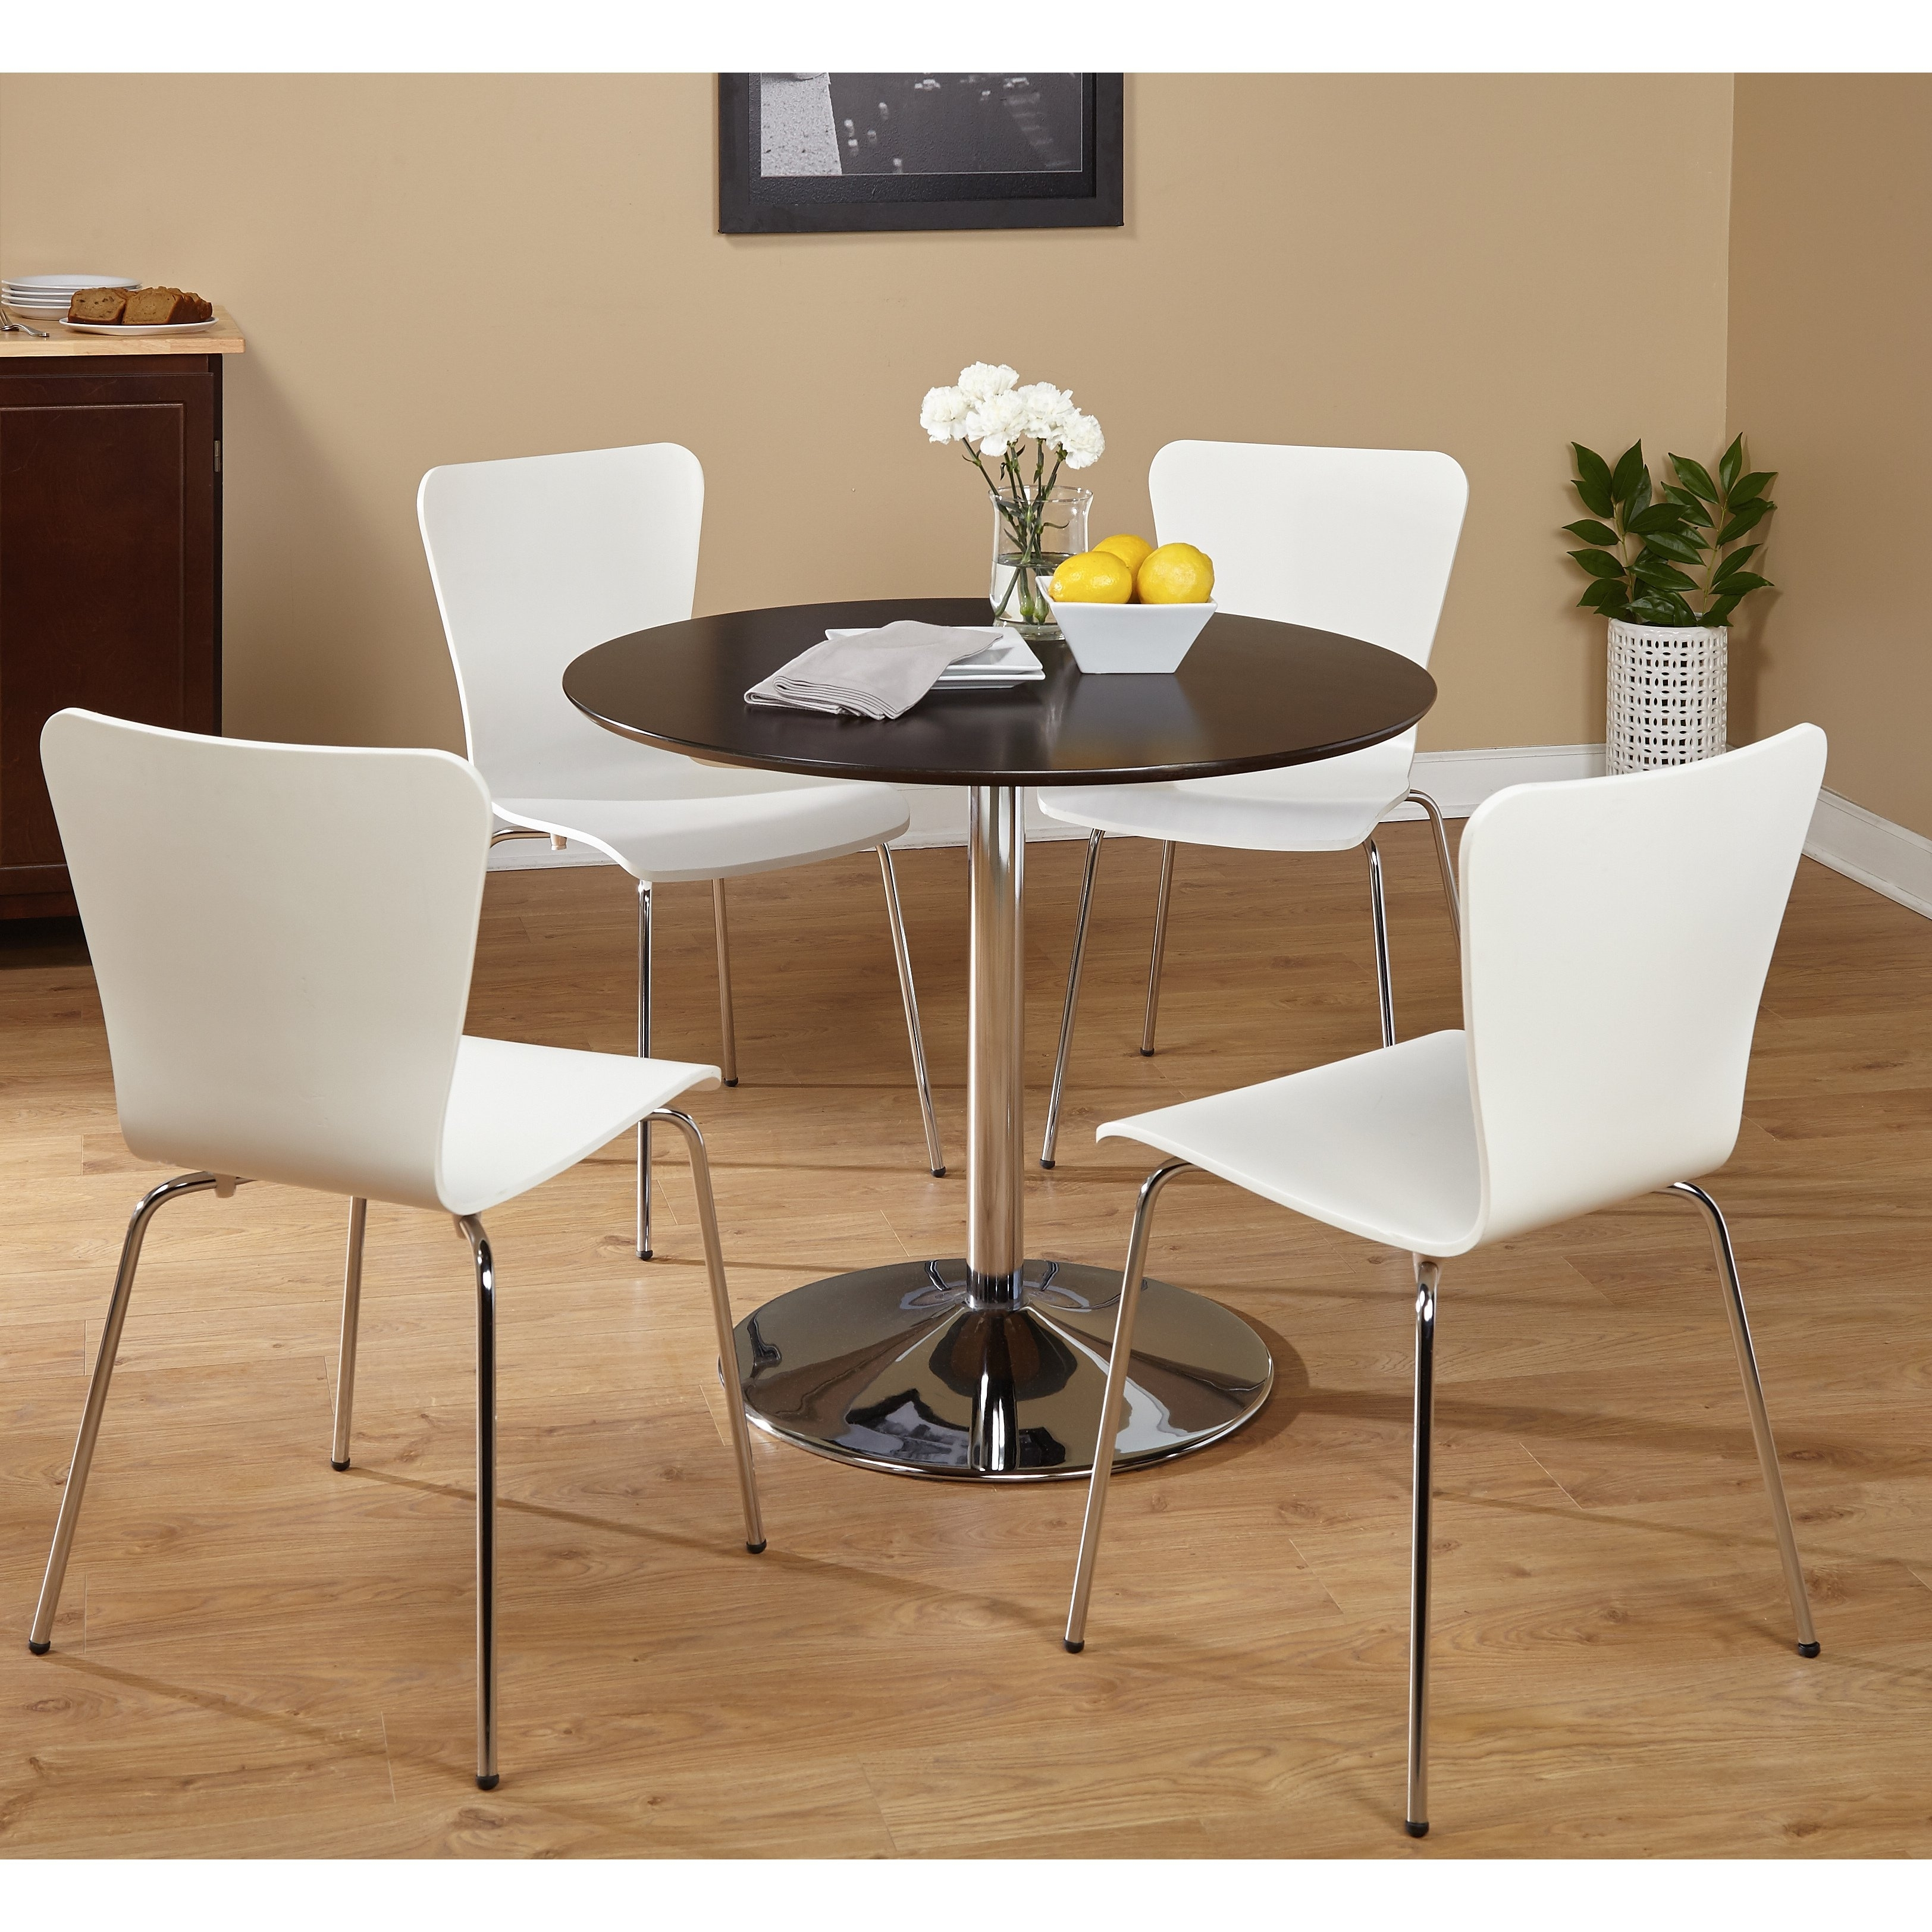 Pisa Dining Tables Throughout Preferred Shop Five Piece Pisa Dining Set – Free Shipping Today – Overstock (View 3 of 25)